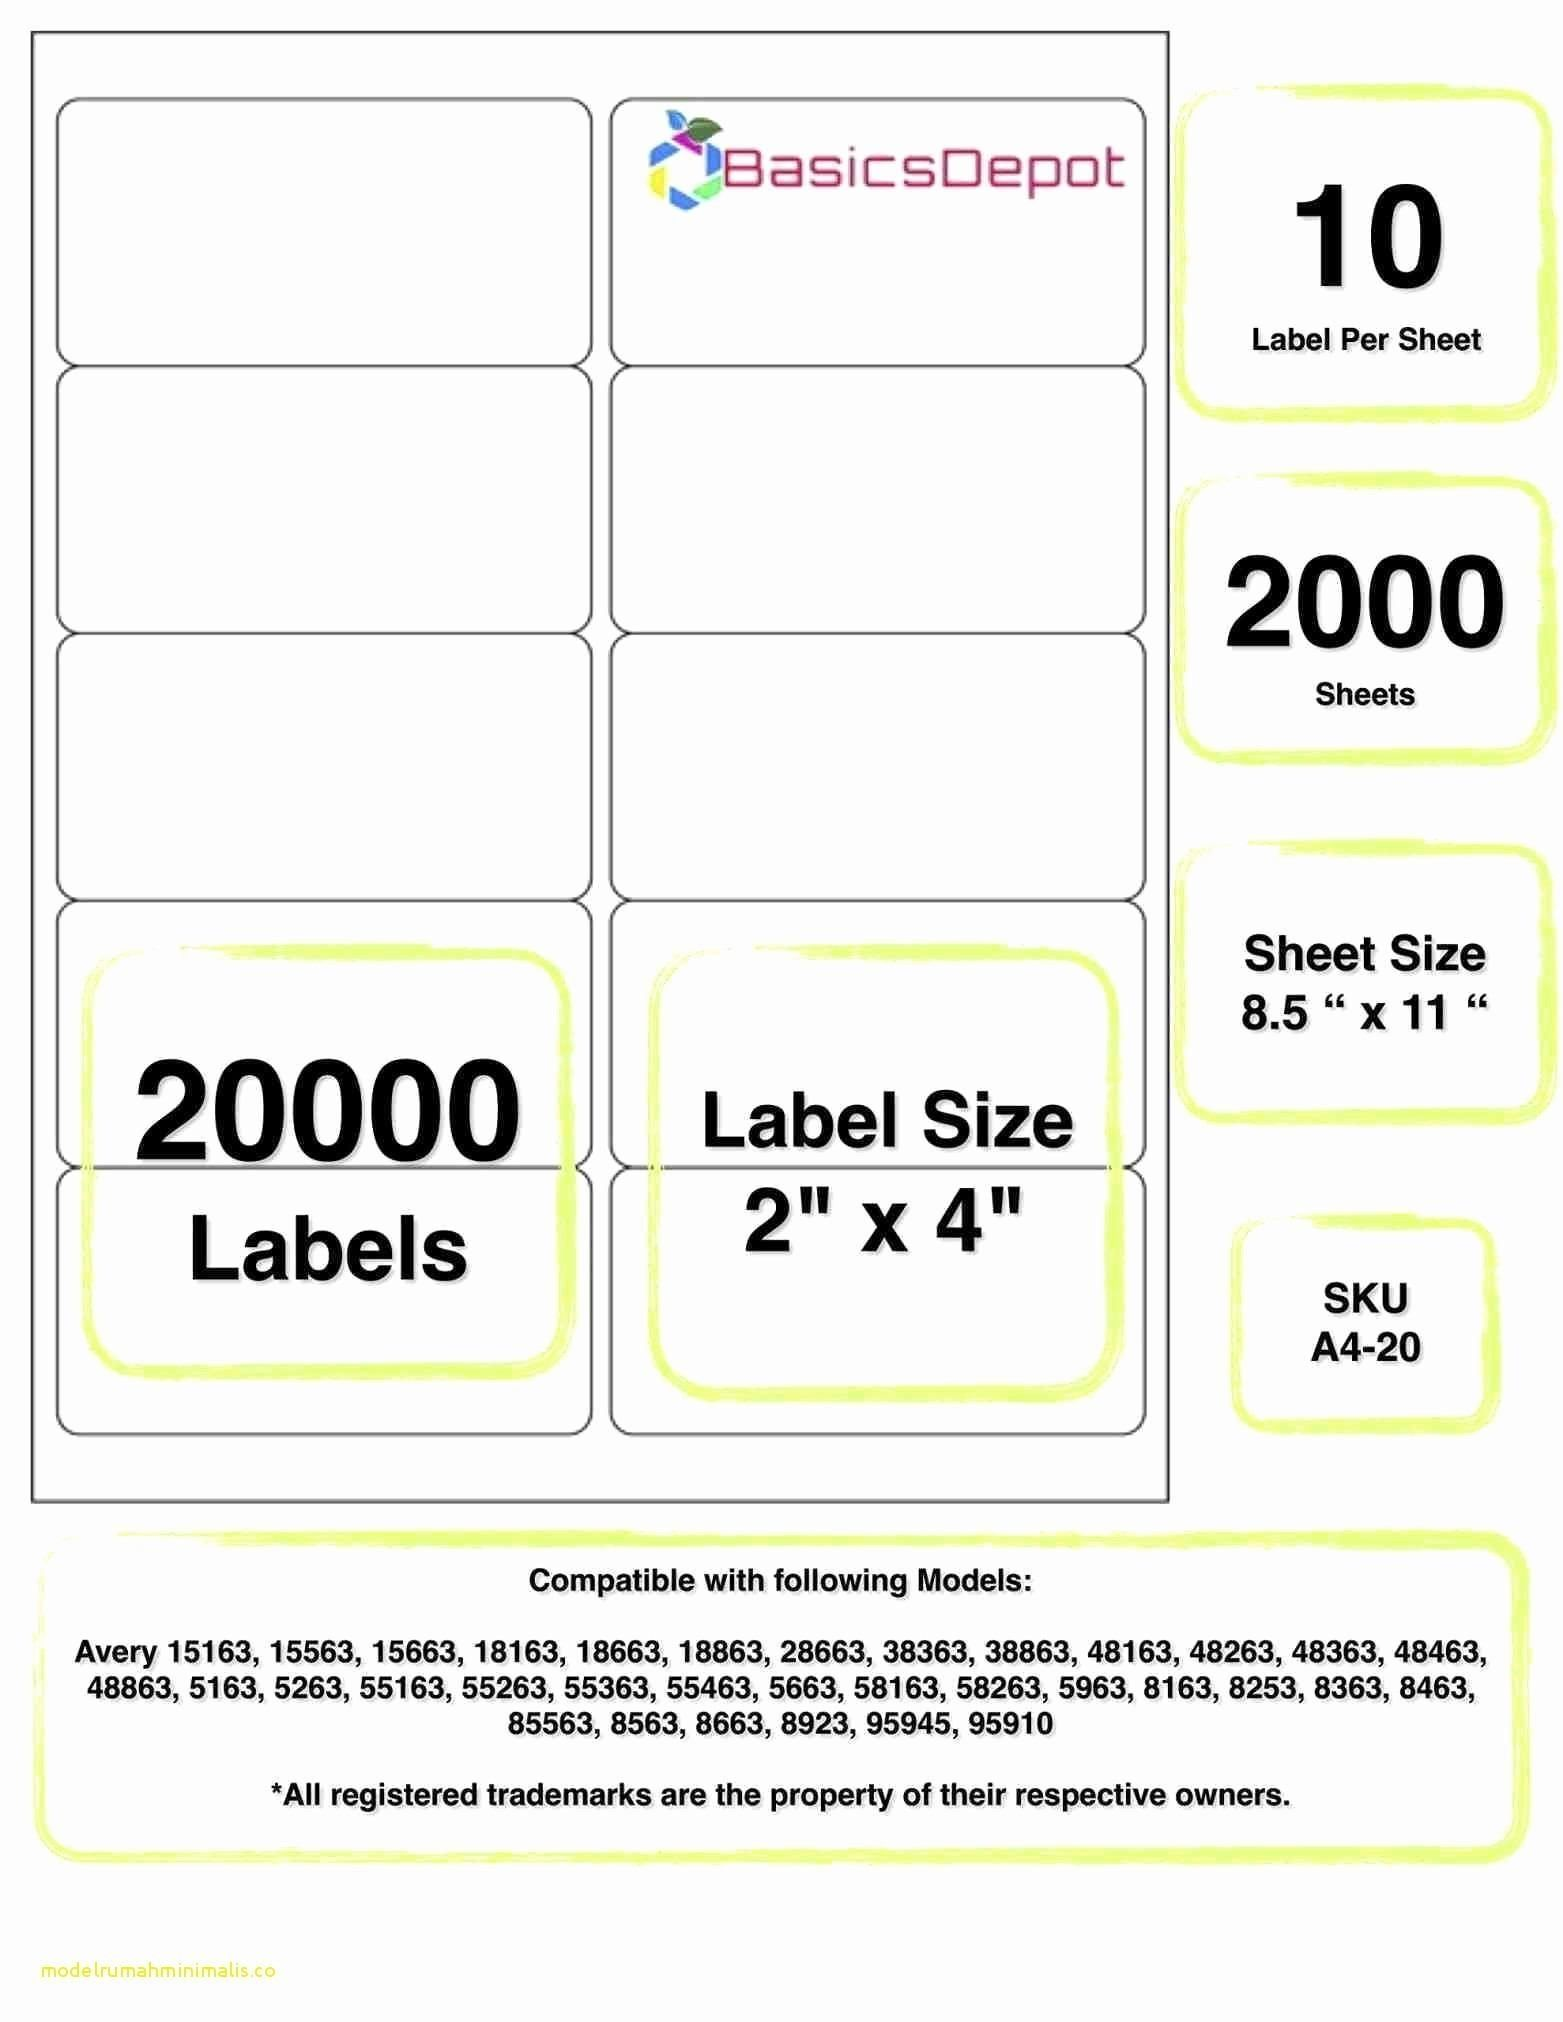 Avery 8253 Word Template from i.pinimg.com